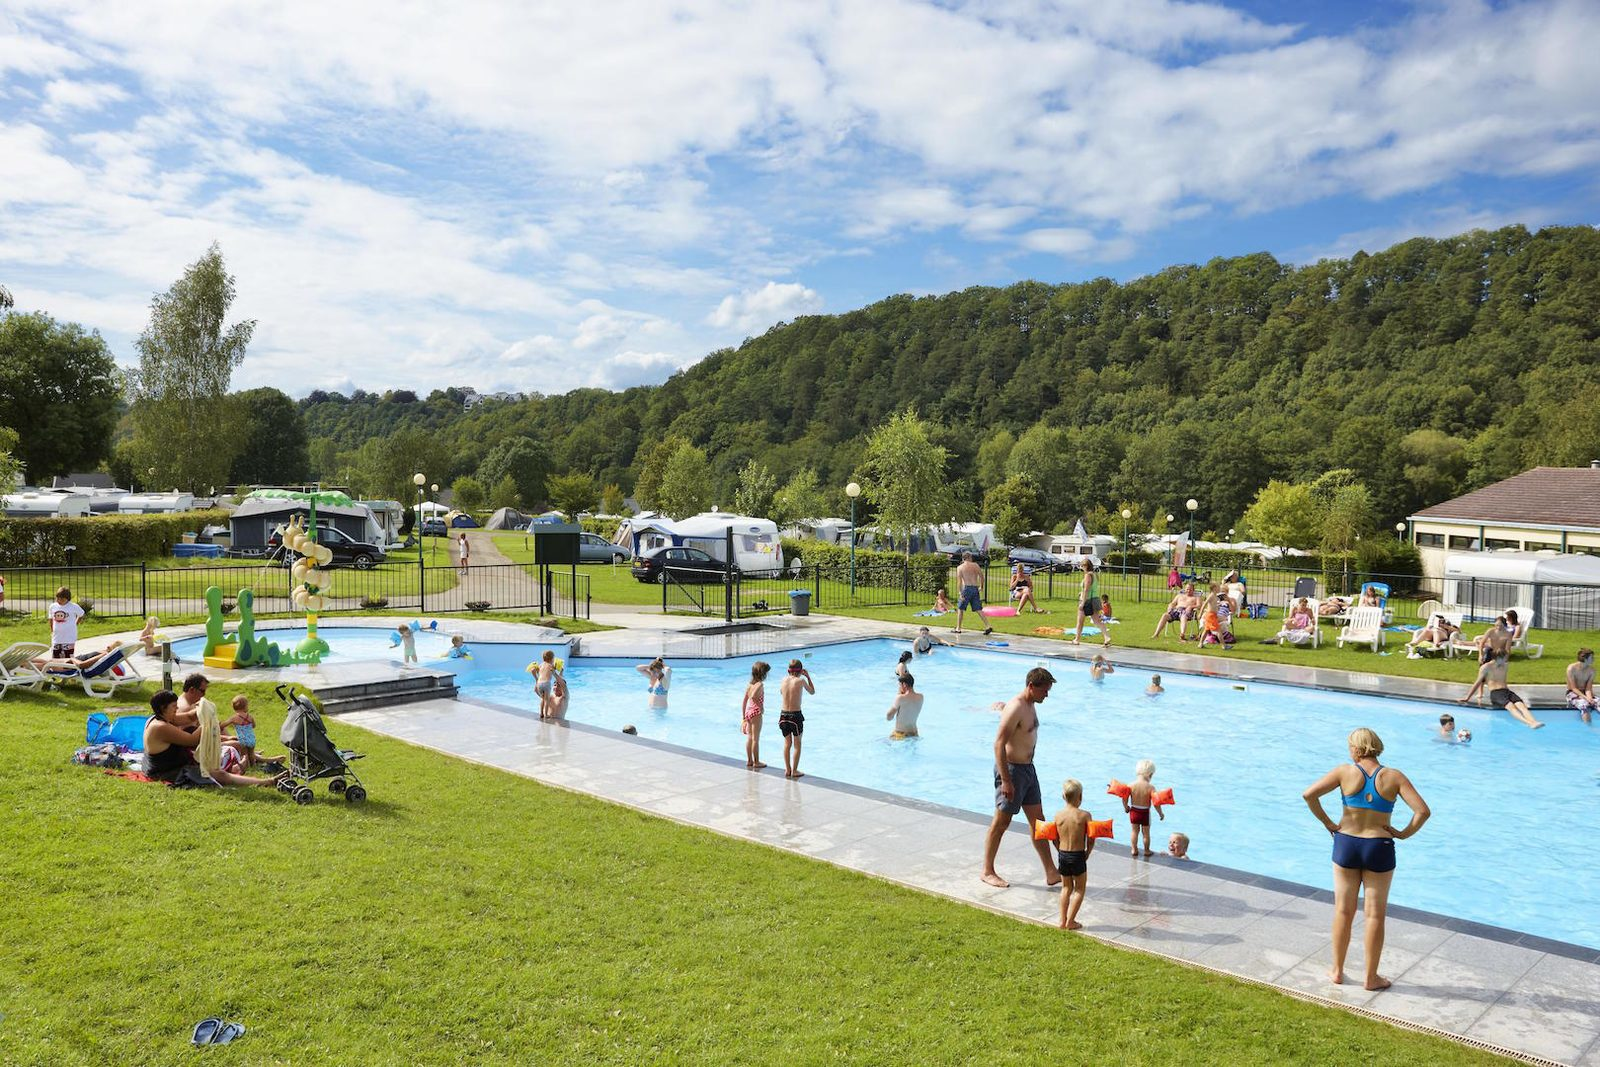 Chalet Ardennen Zwembad Camping Ardennen Met Zwembad Camping Spa D Or